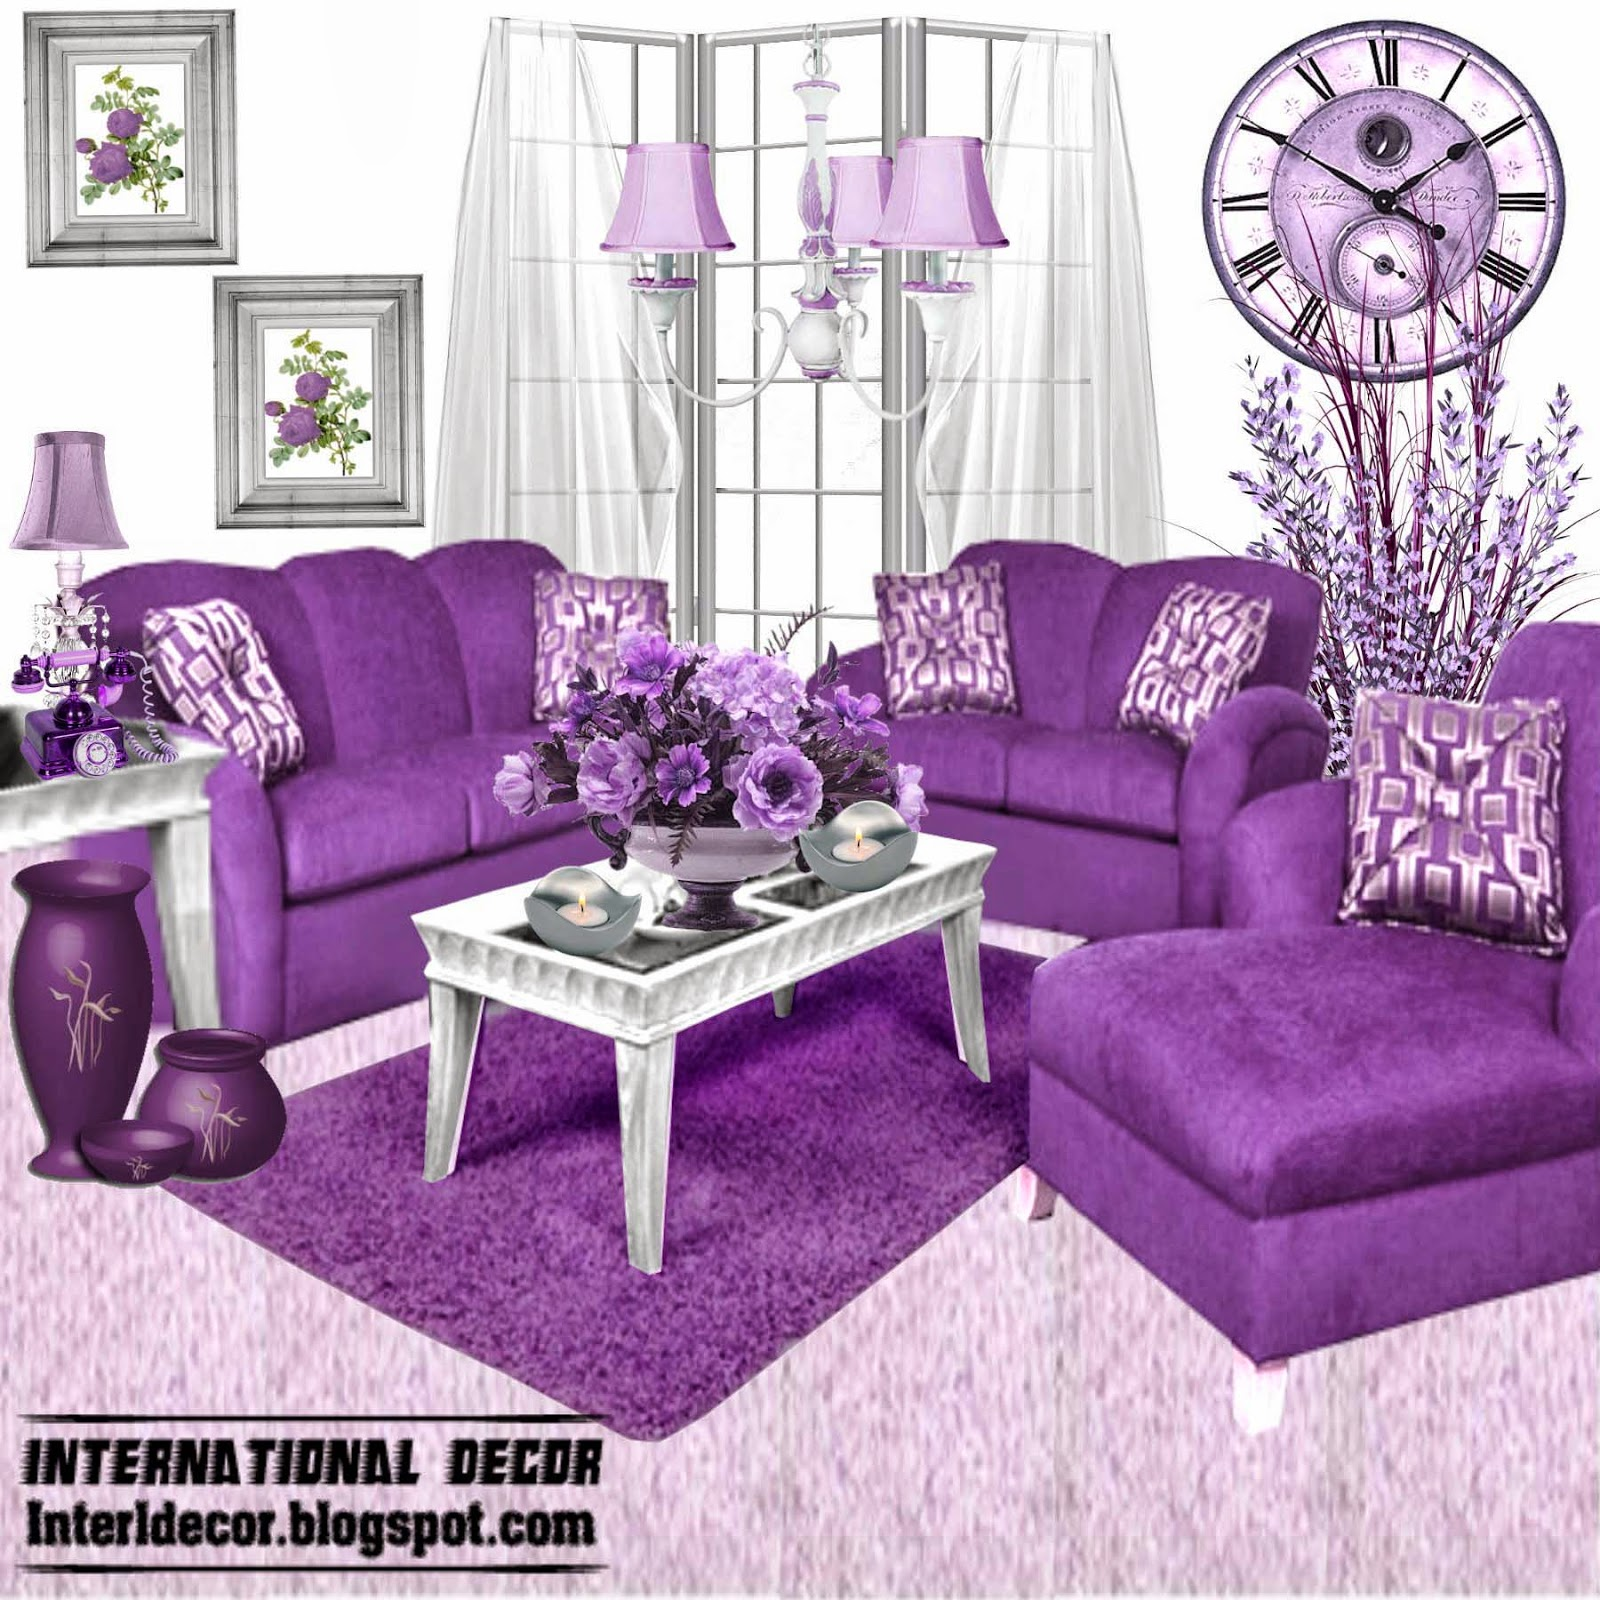 Luxury purple furniture sets sofas chairs for living for Living room sofa